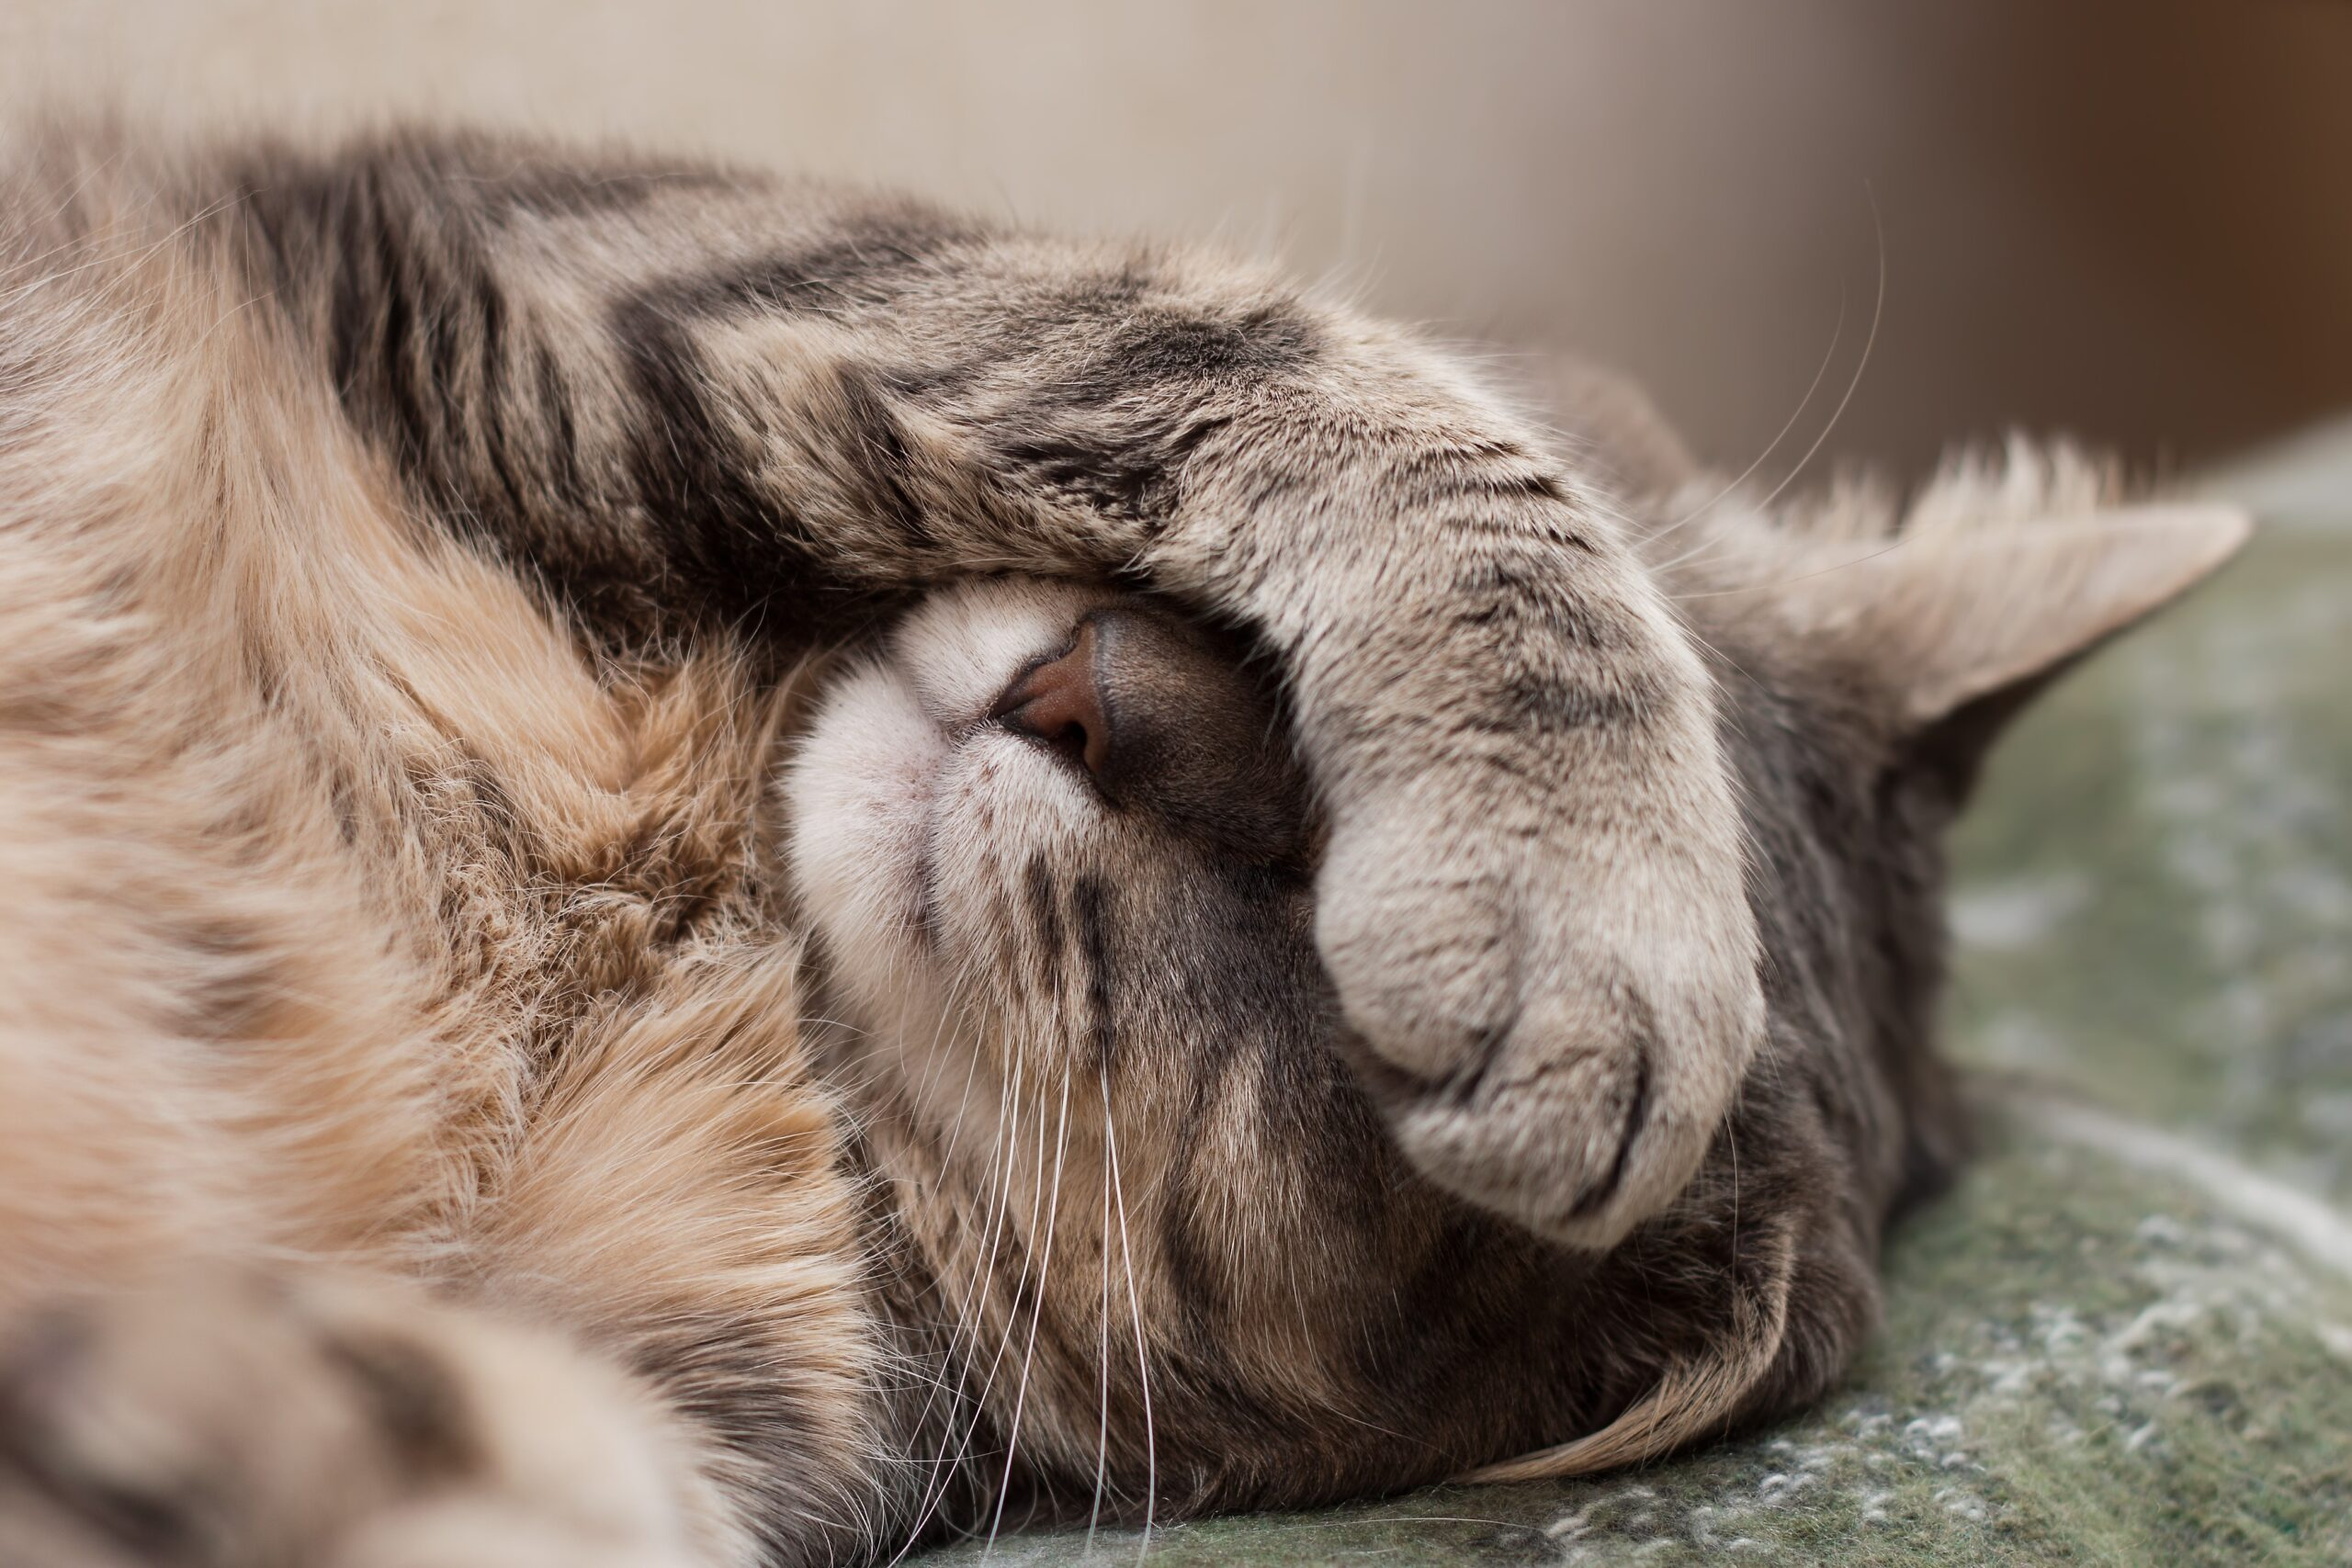 Urinary Blockages In Cats, A REAL EMERGENCY